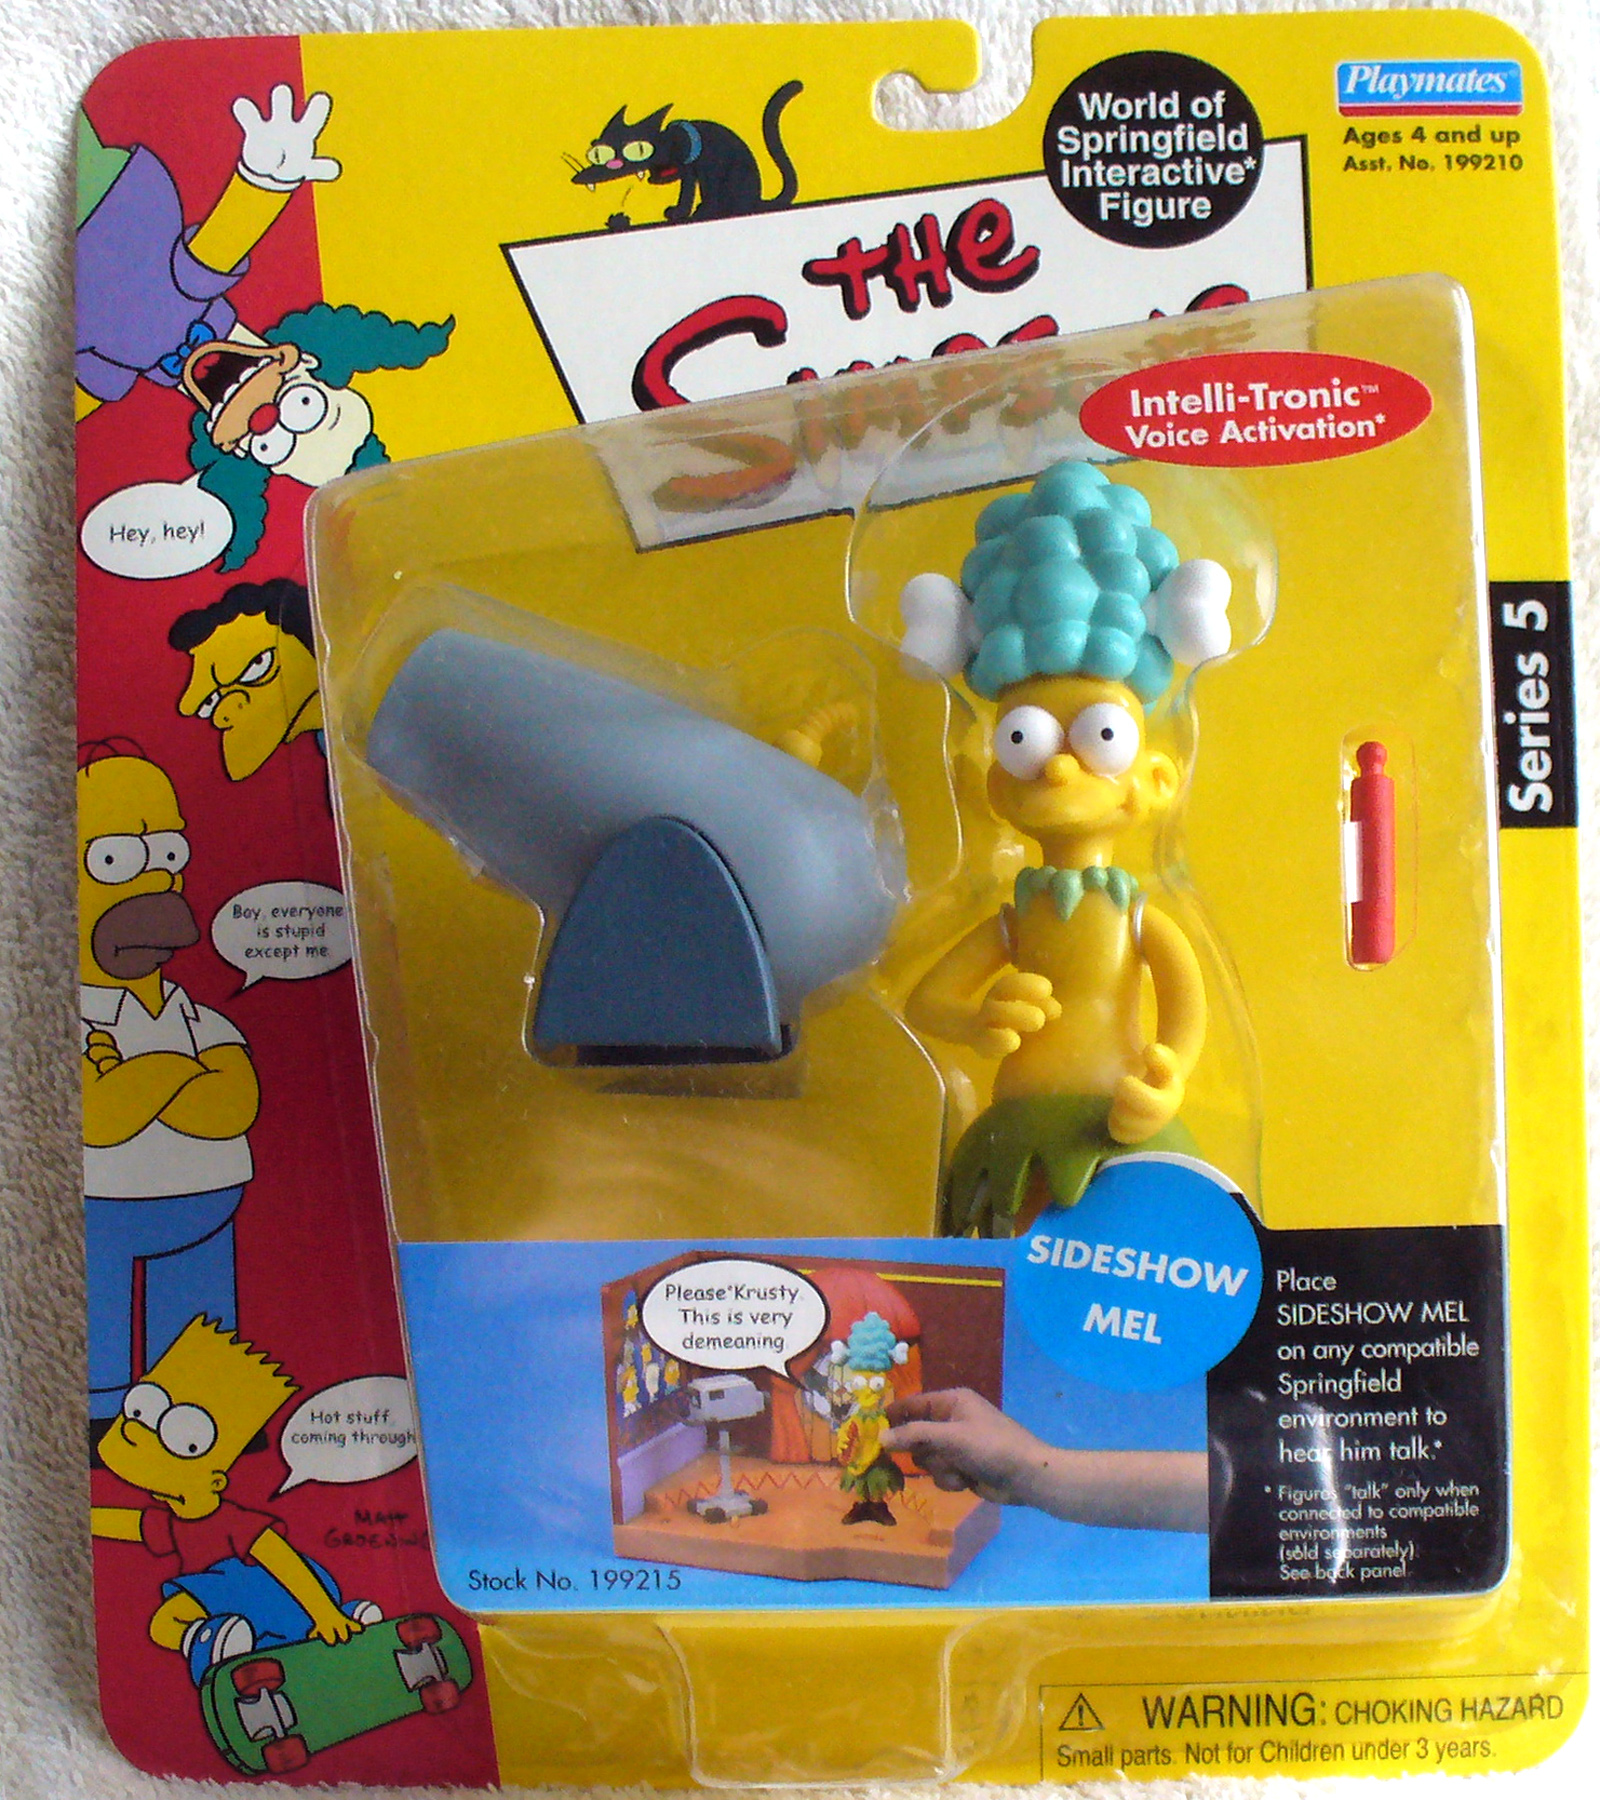 NEW 2001 Playmates Series 5 Simpsons Sideshow Mel Intellitronic Figure